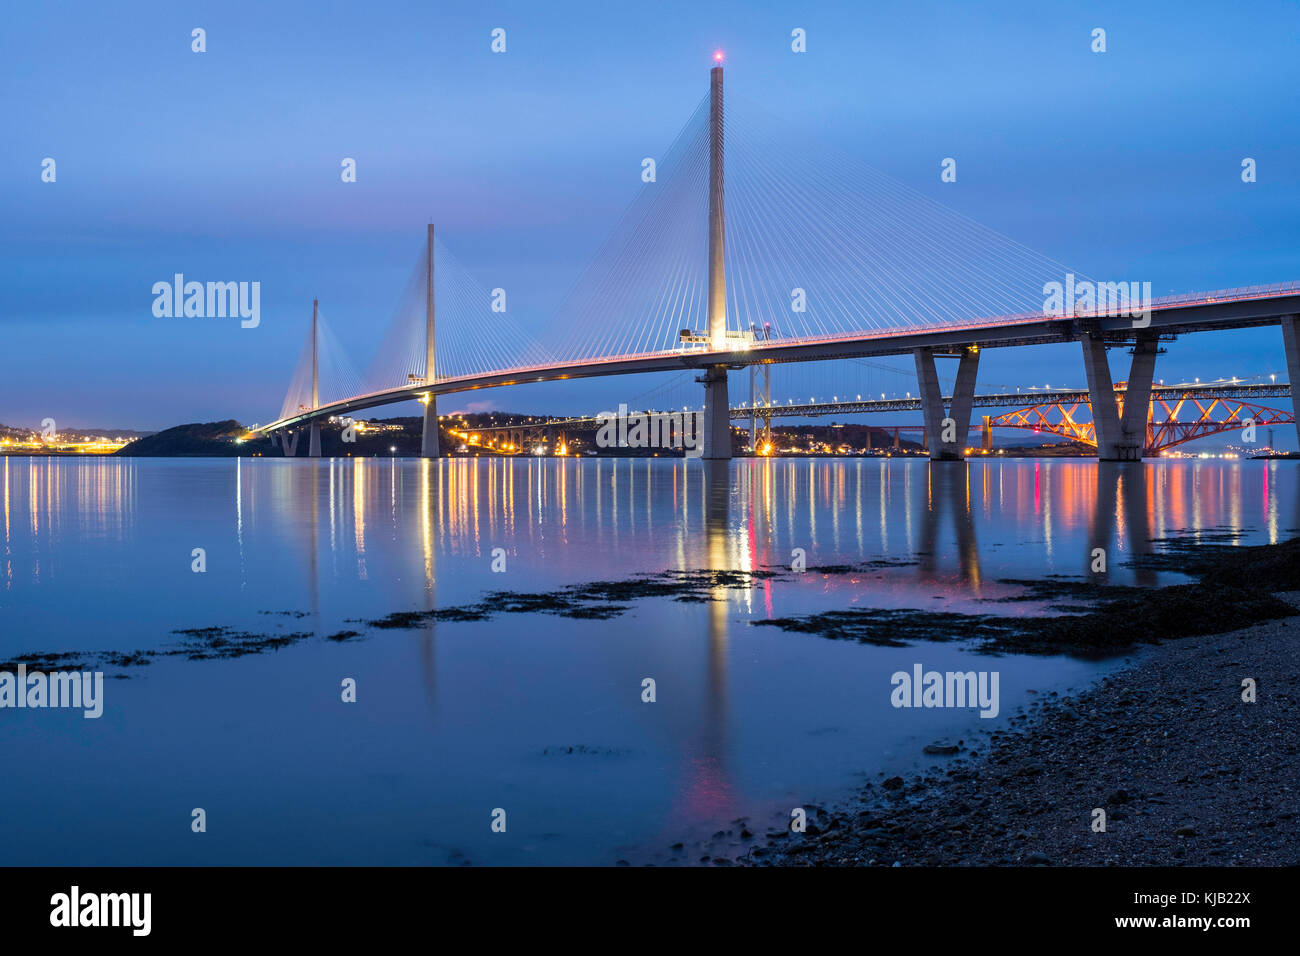 Night view of new Queensferry Crossing Bridge spanning the River Forth in Scotland, United Kingdom - Stock Image